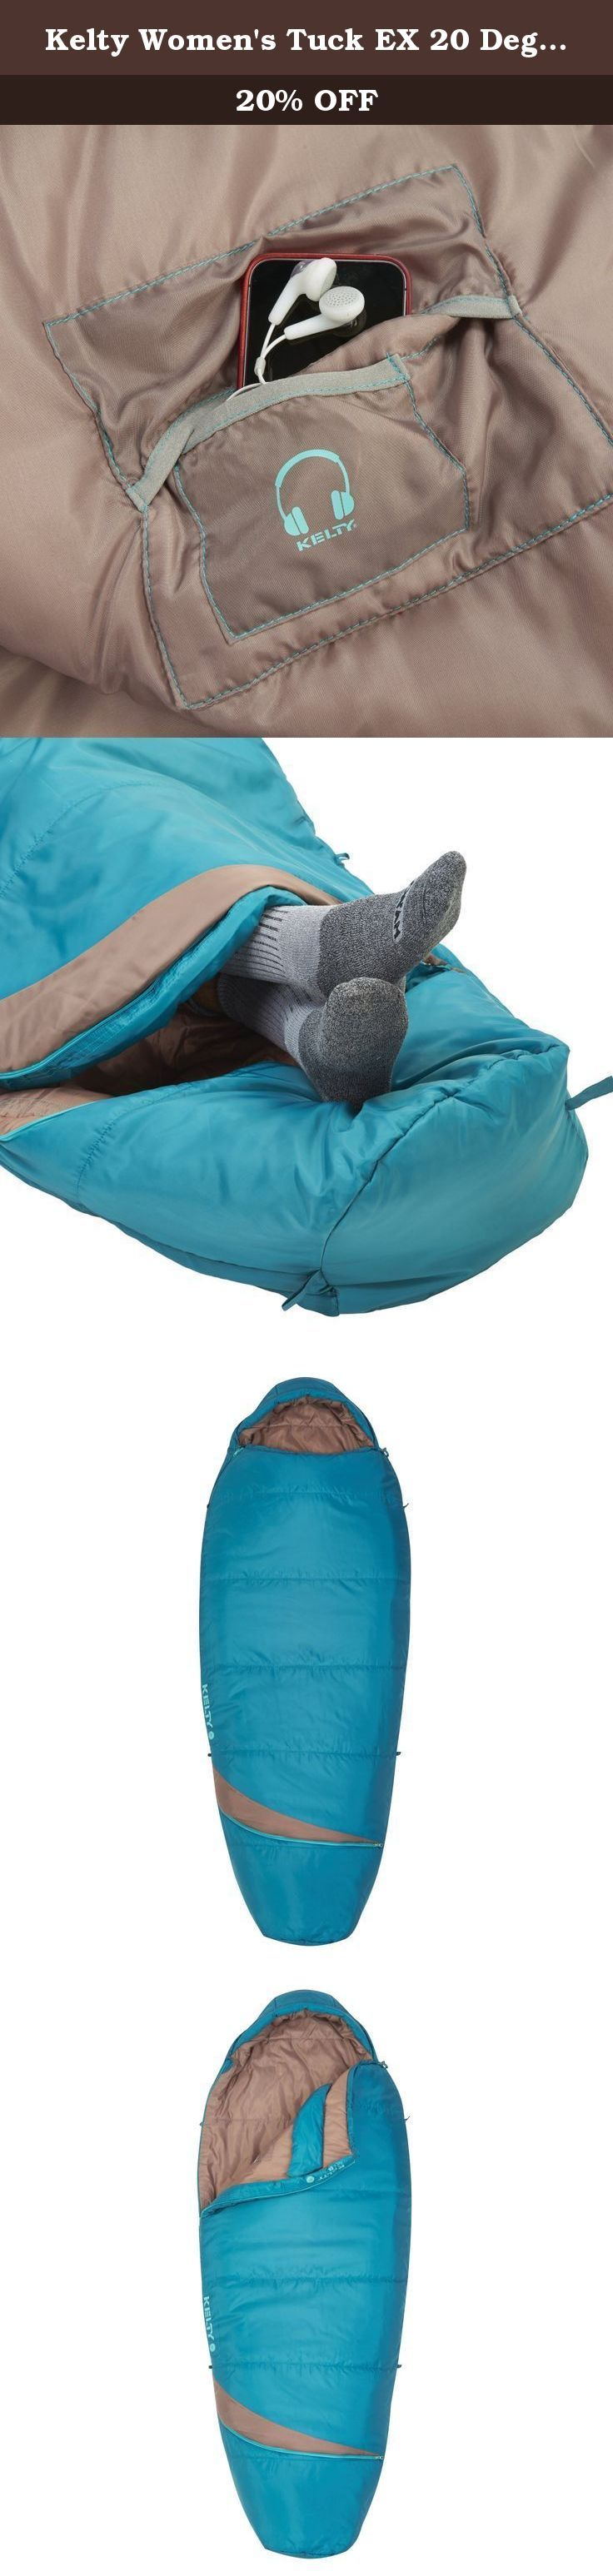 Kelty Women's Tuck EX 20 Degree Sleeping Bag, Deep Lake/Tropical Green. Deluxe. Lounge. Chair. What more do you need to know the deluxe Lounge chair comes fully-featured with everything you need to relax, including three recline positions, adjustable arms, and dual beverage holders.